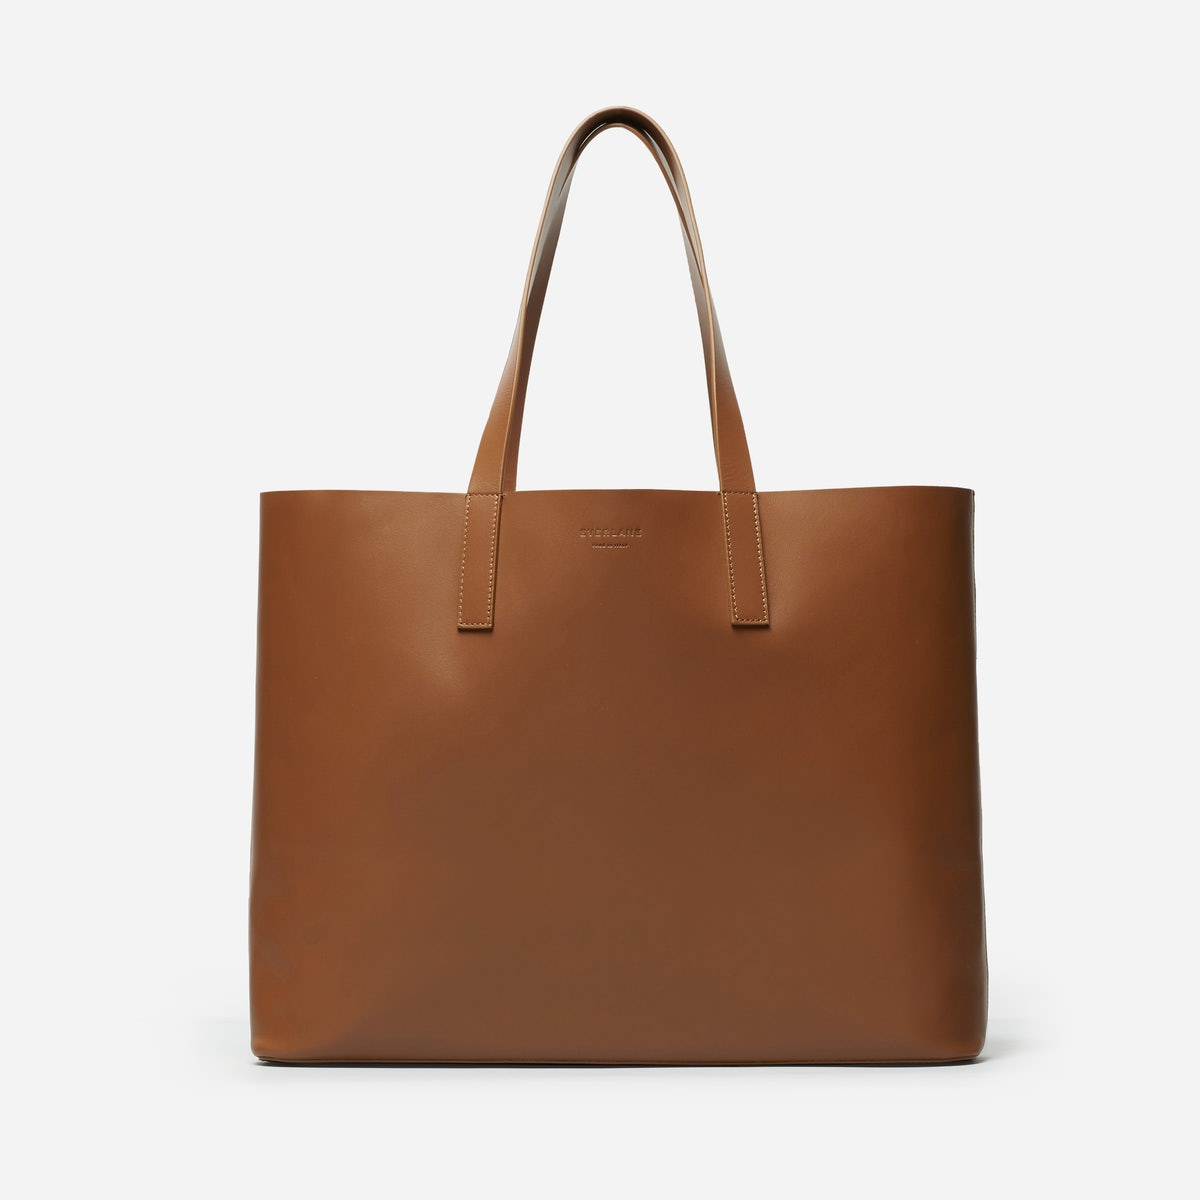 Everlane tote bag